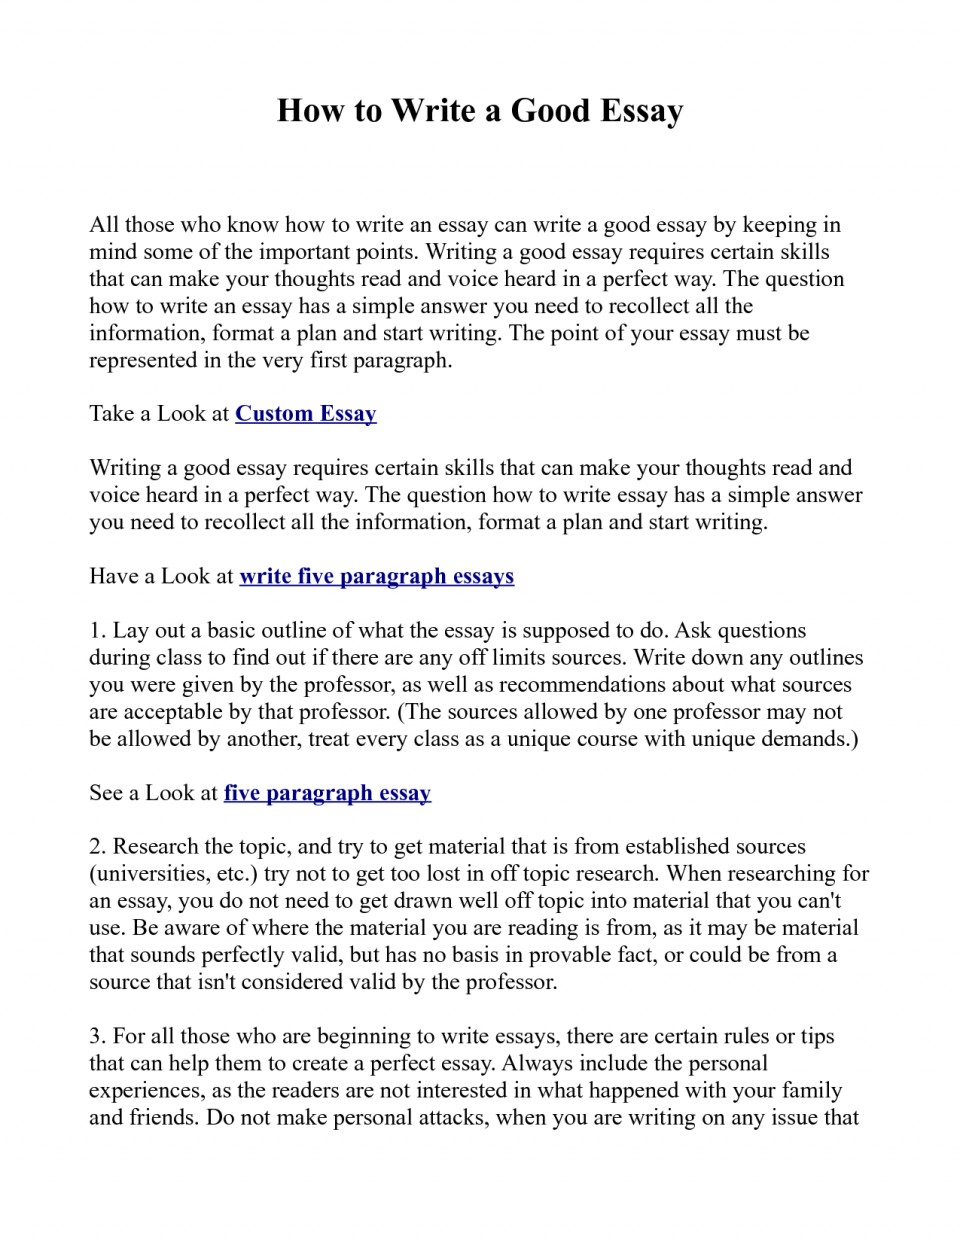 007 Ex1id5s6cl Essay Example How To Start Amazing An Analysis On A Book Ways With Question About Two Books 960